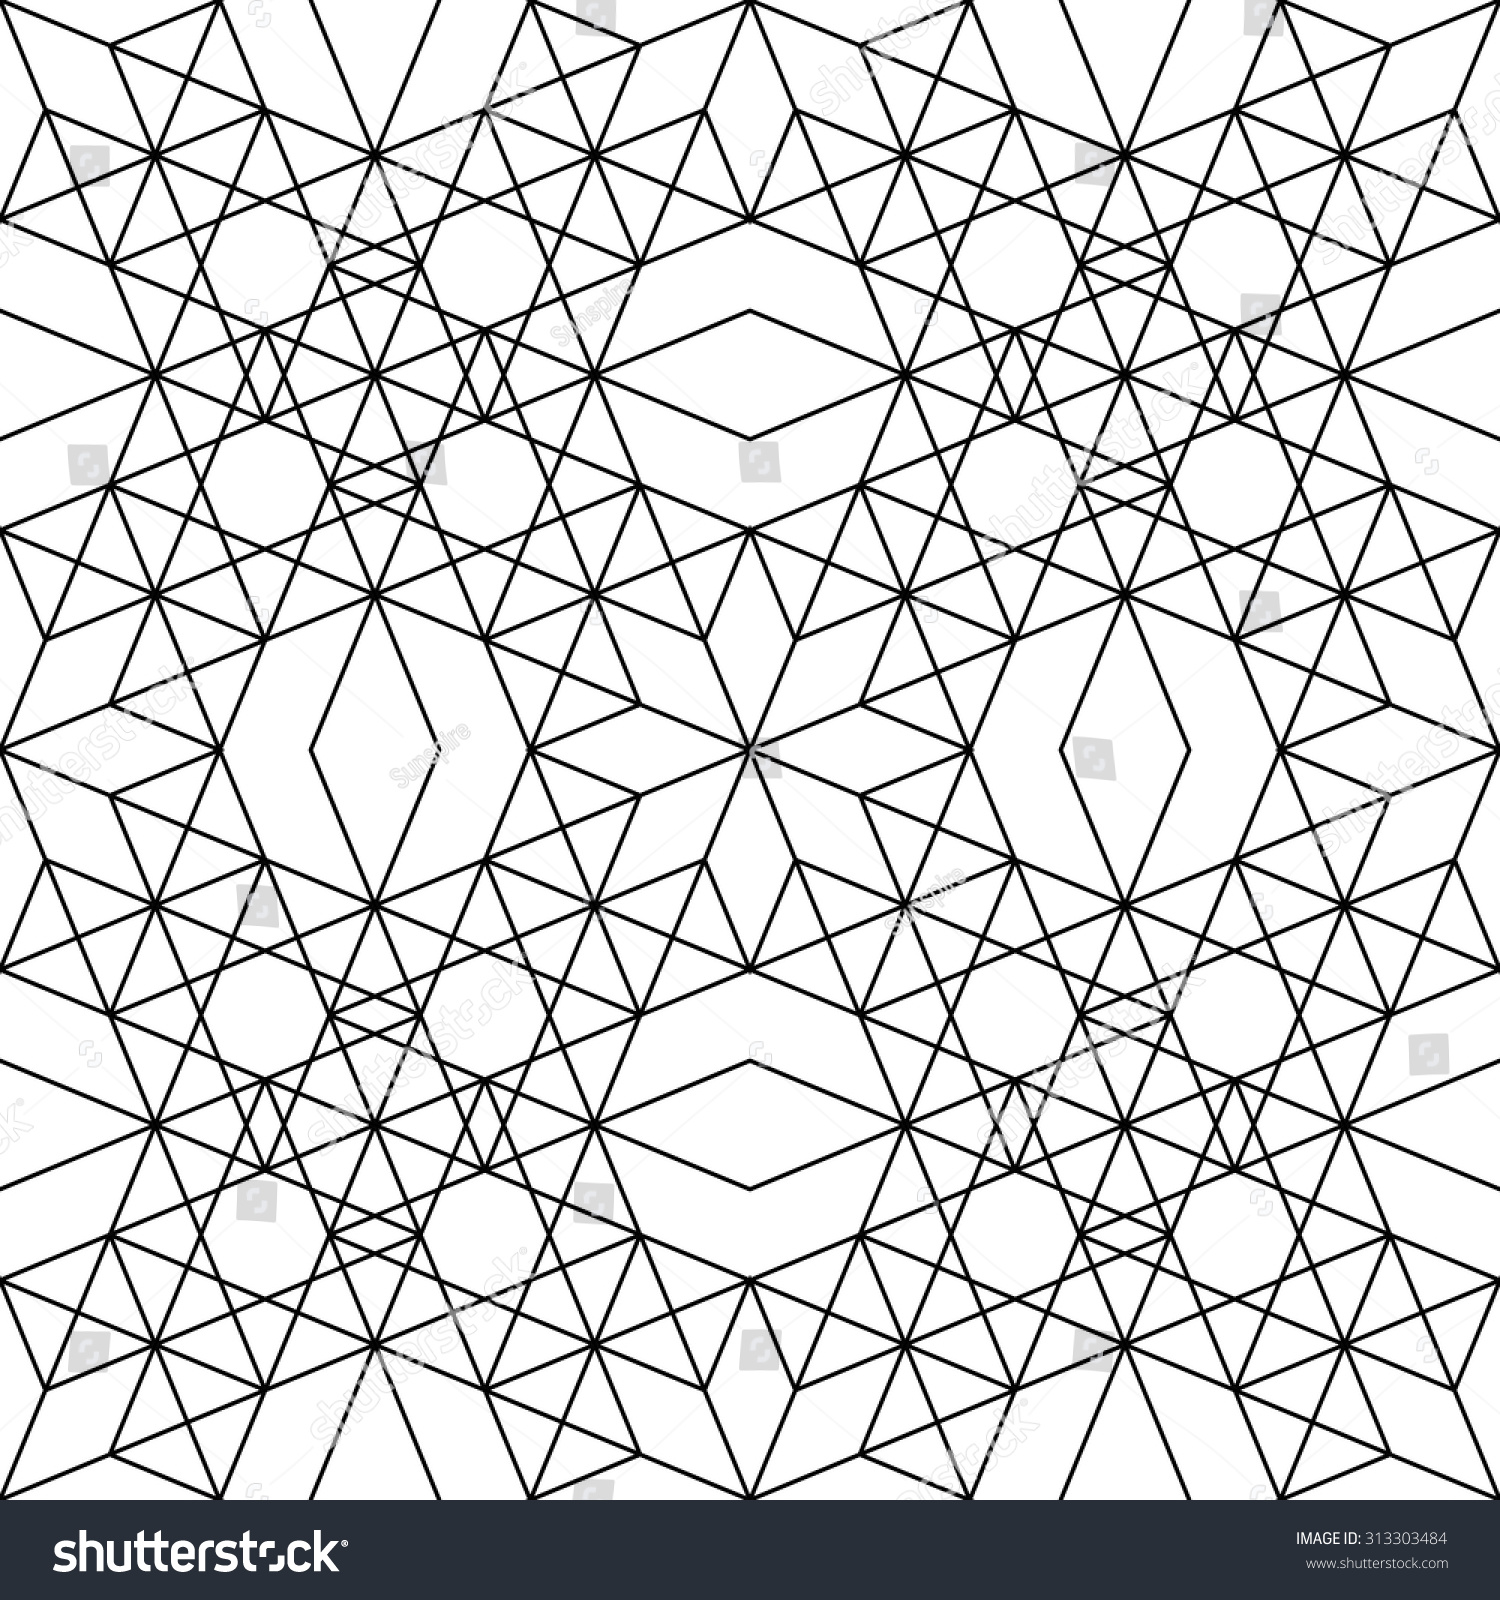 Bed sheet pattern texture - Vector Modern Seamless Pattern Geometry Black And White Textile Print Stylish Background Abstract